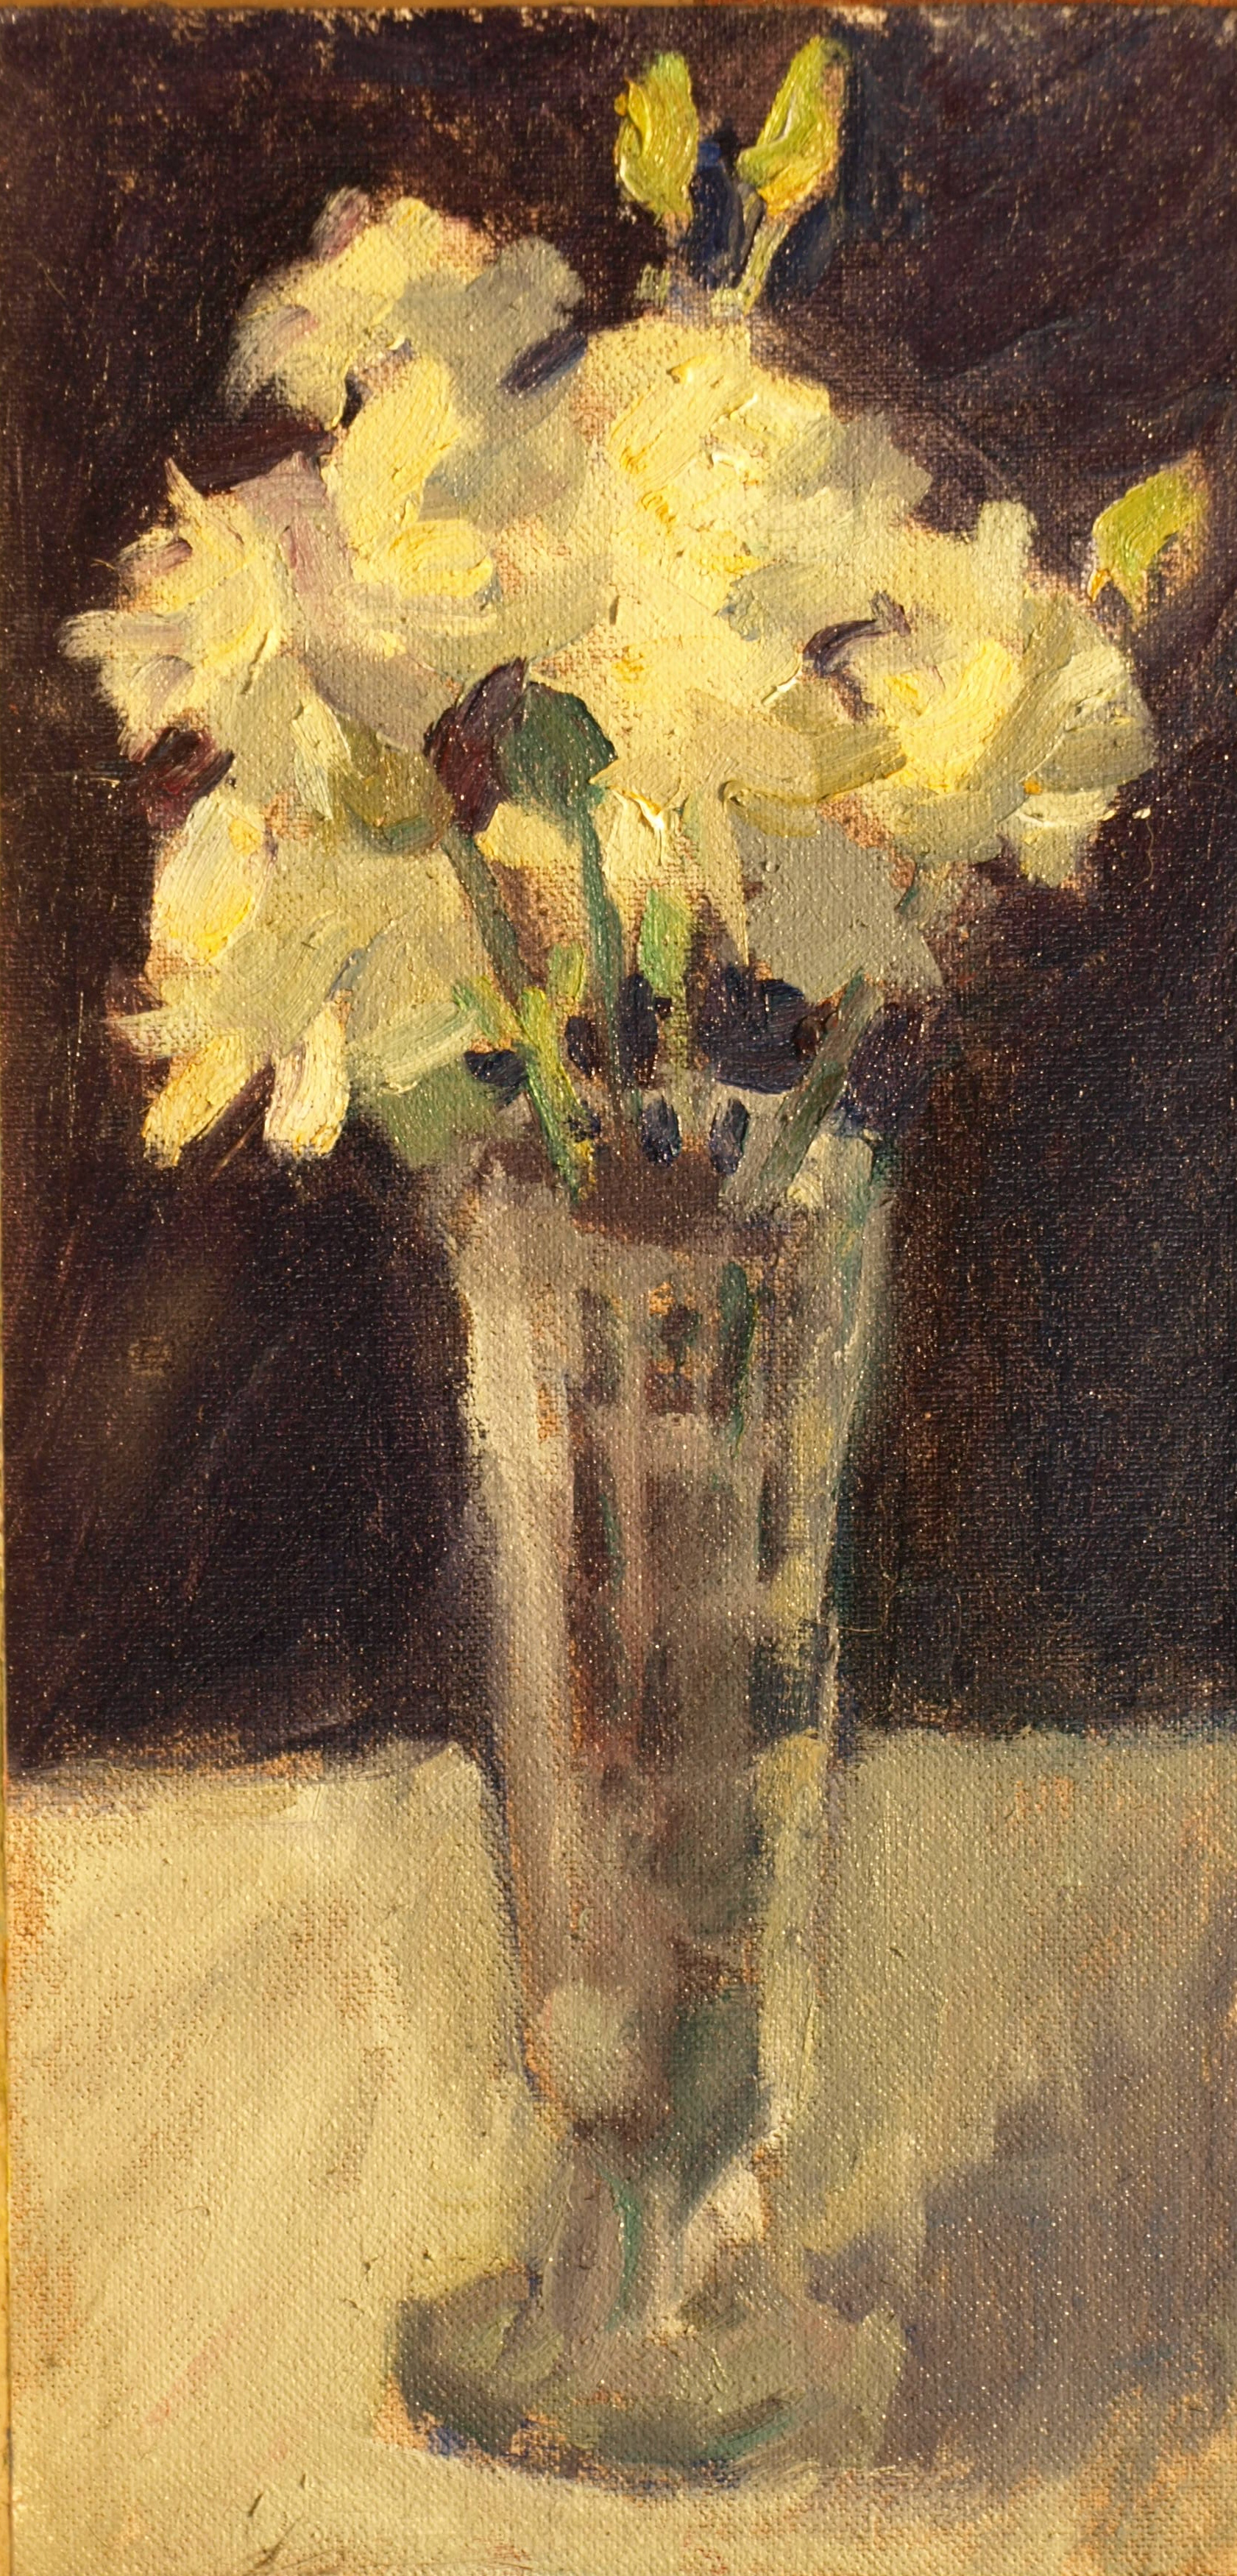 Carnations, Oil on Canvas on Panel, 12 x 6 Inches, by Susan Grisell, $200